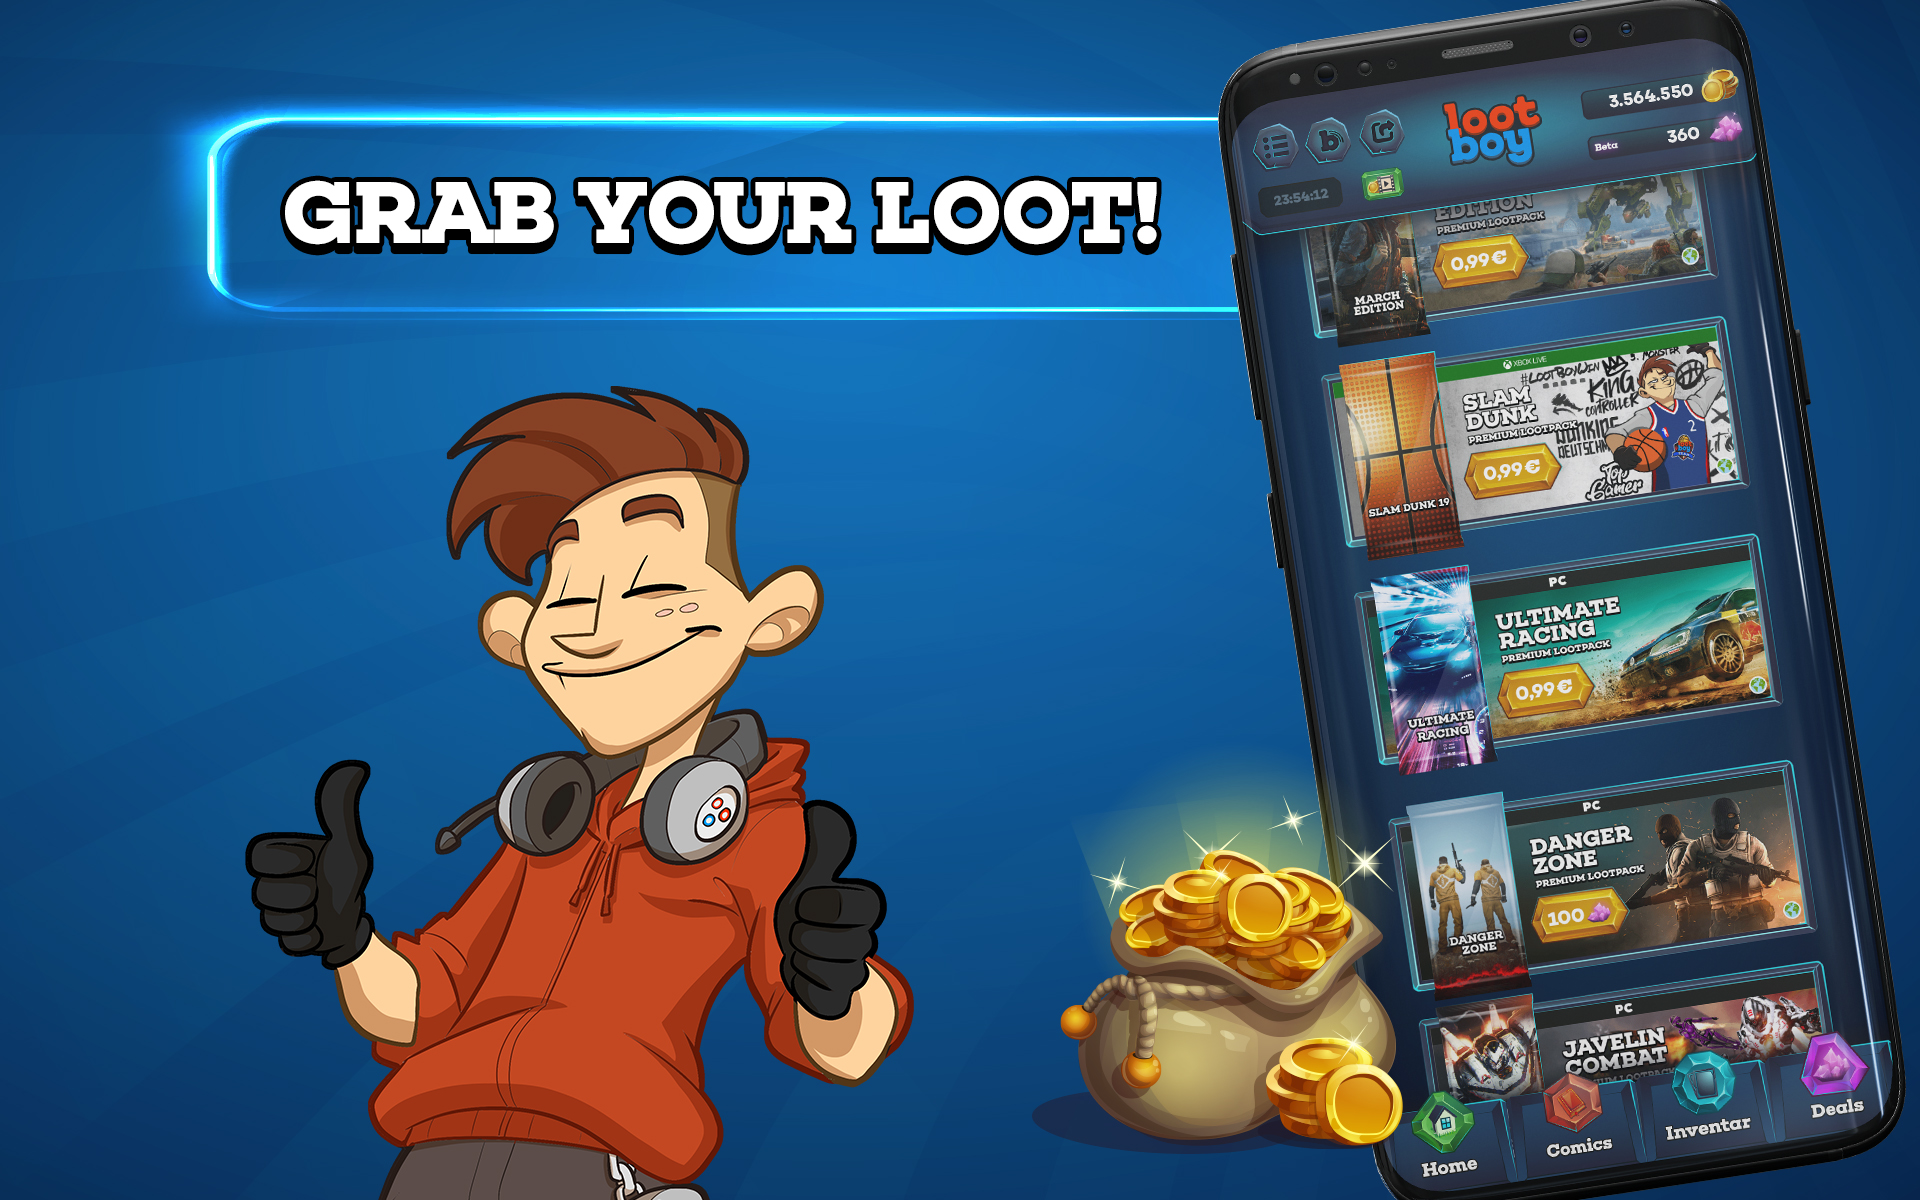 LootBoy - Grab your loot!: Amazon.in: Appstore for Android